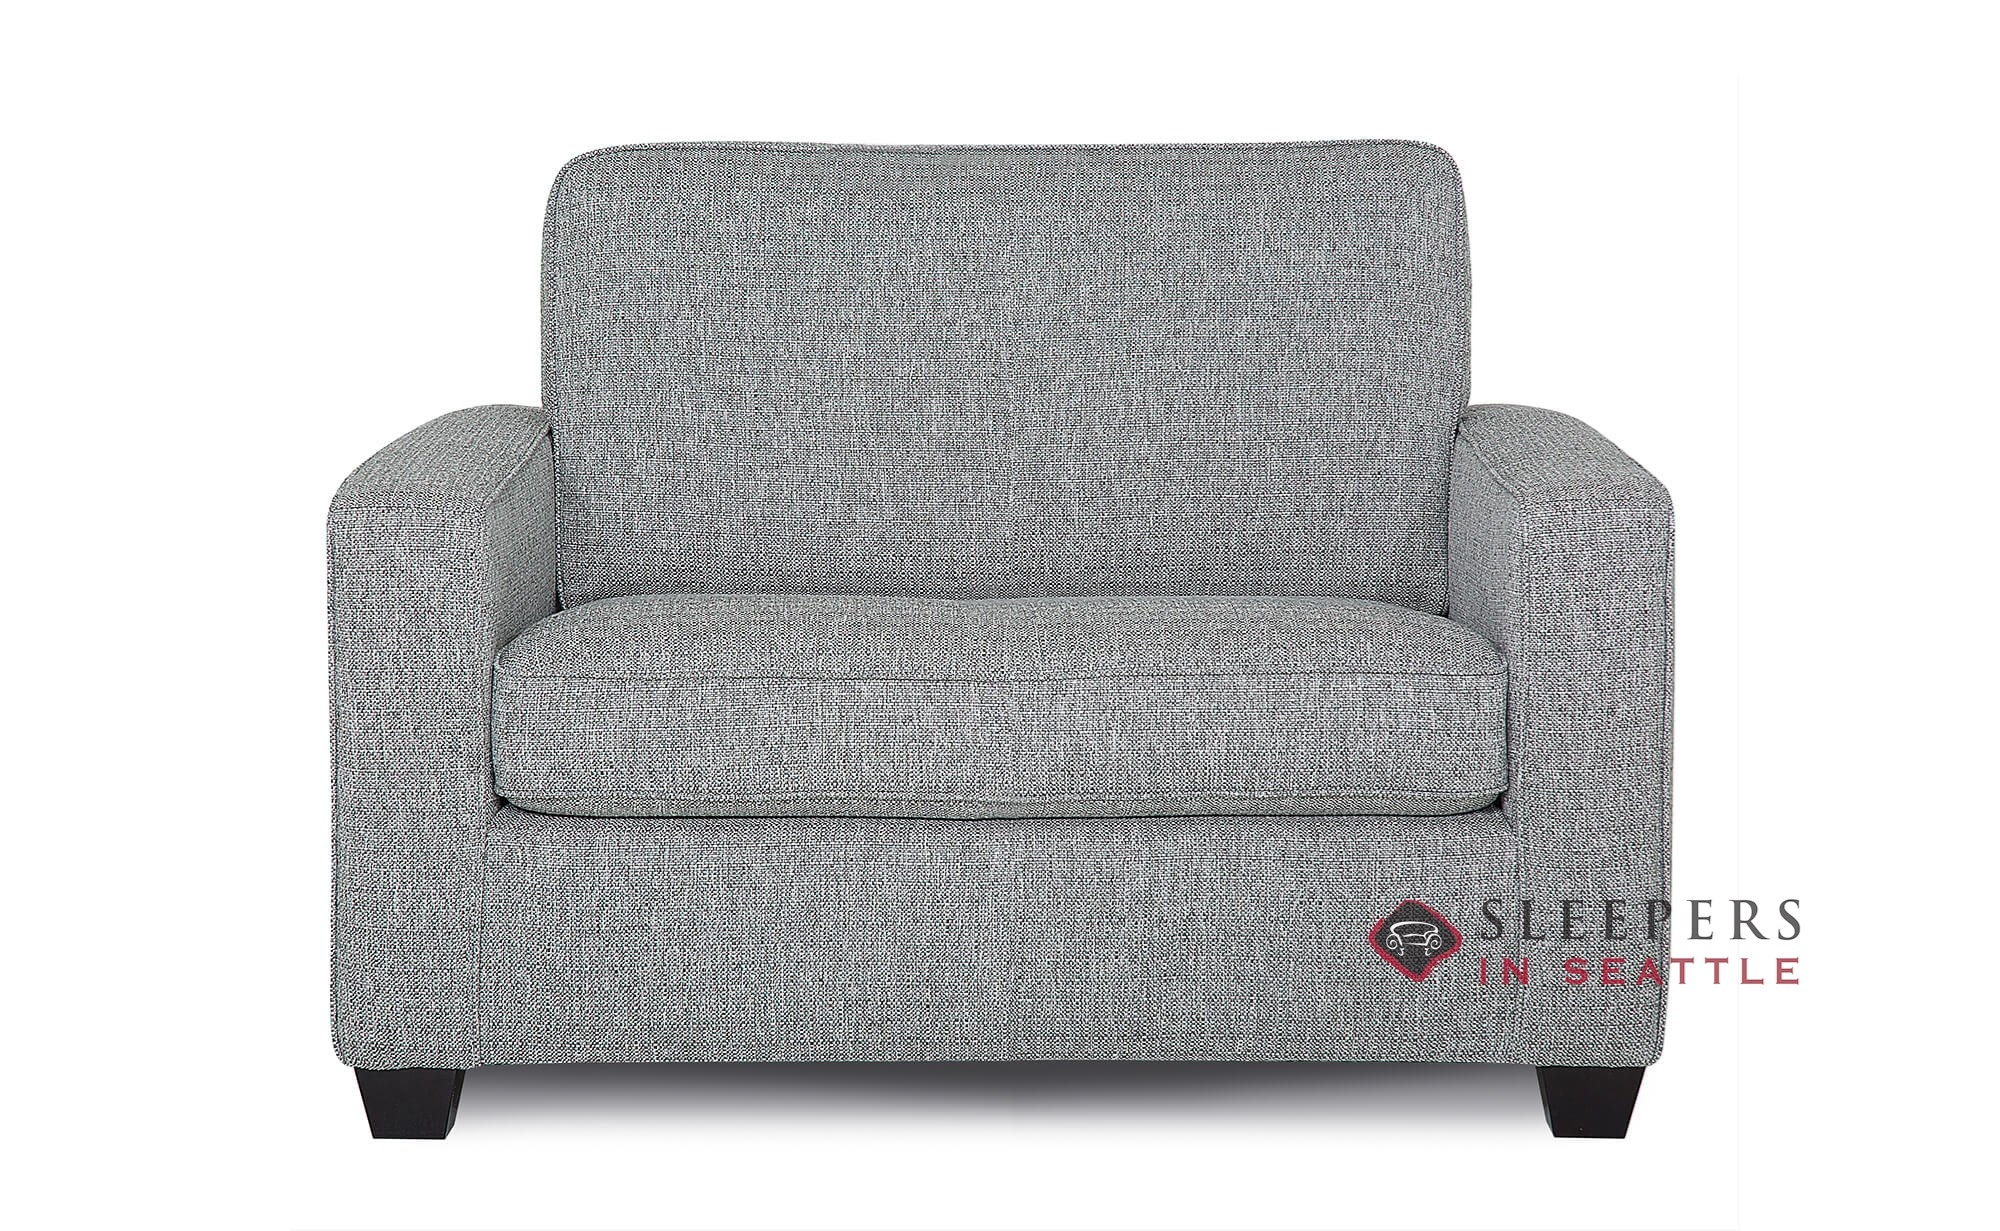 Customize And Personalize Anya Twin Fabric Sofa By Palliser Twin Size Sofa Bed Sleepersinseattle Com